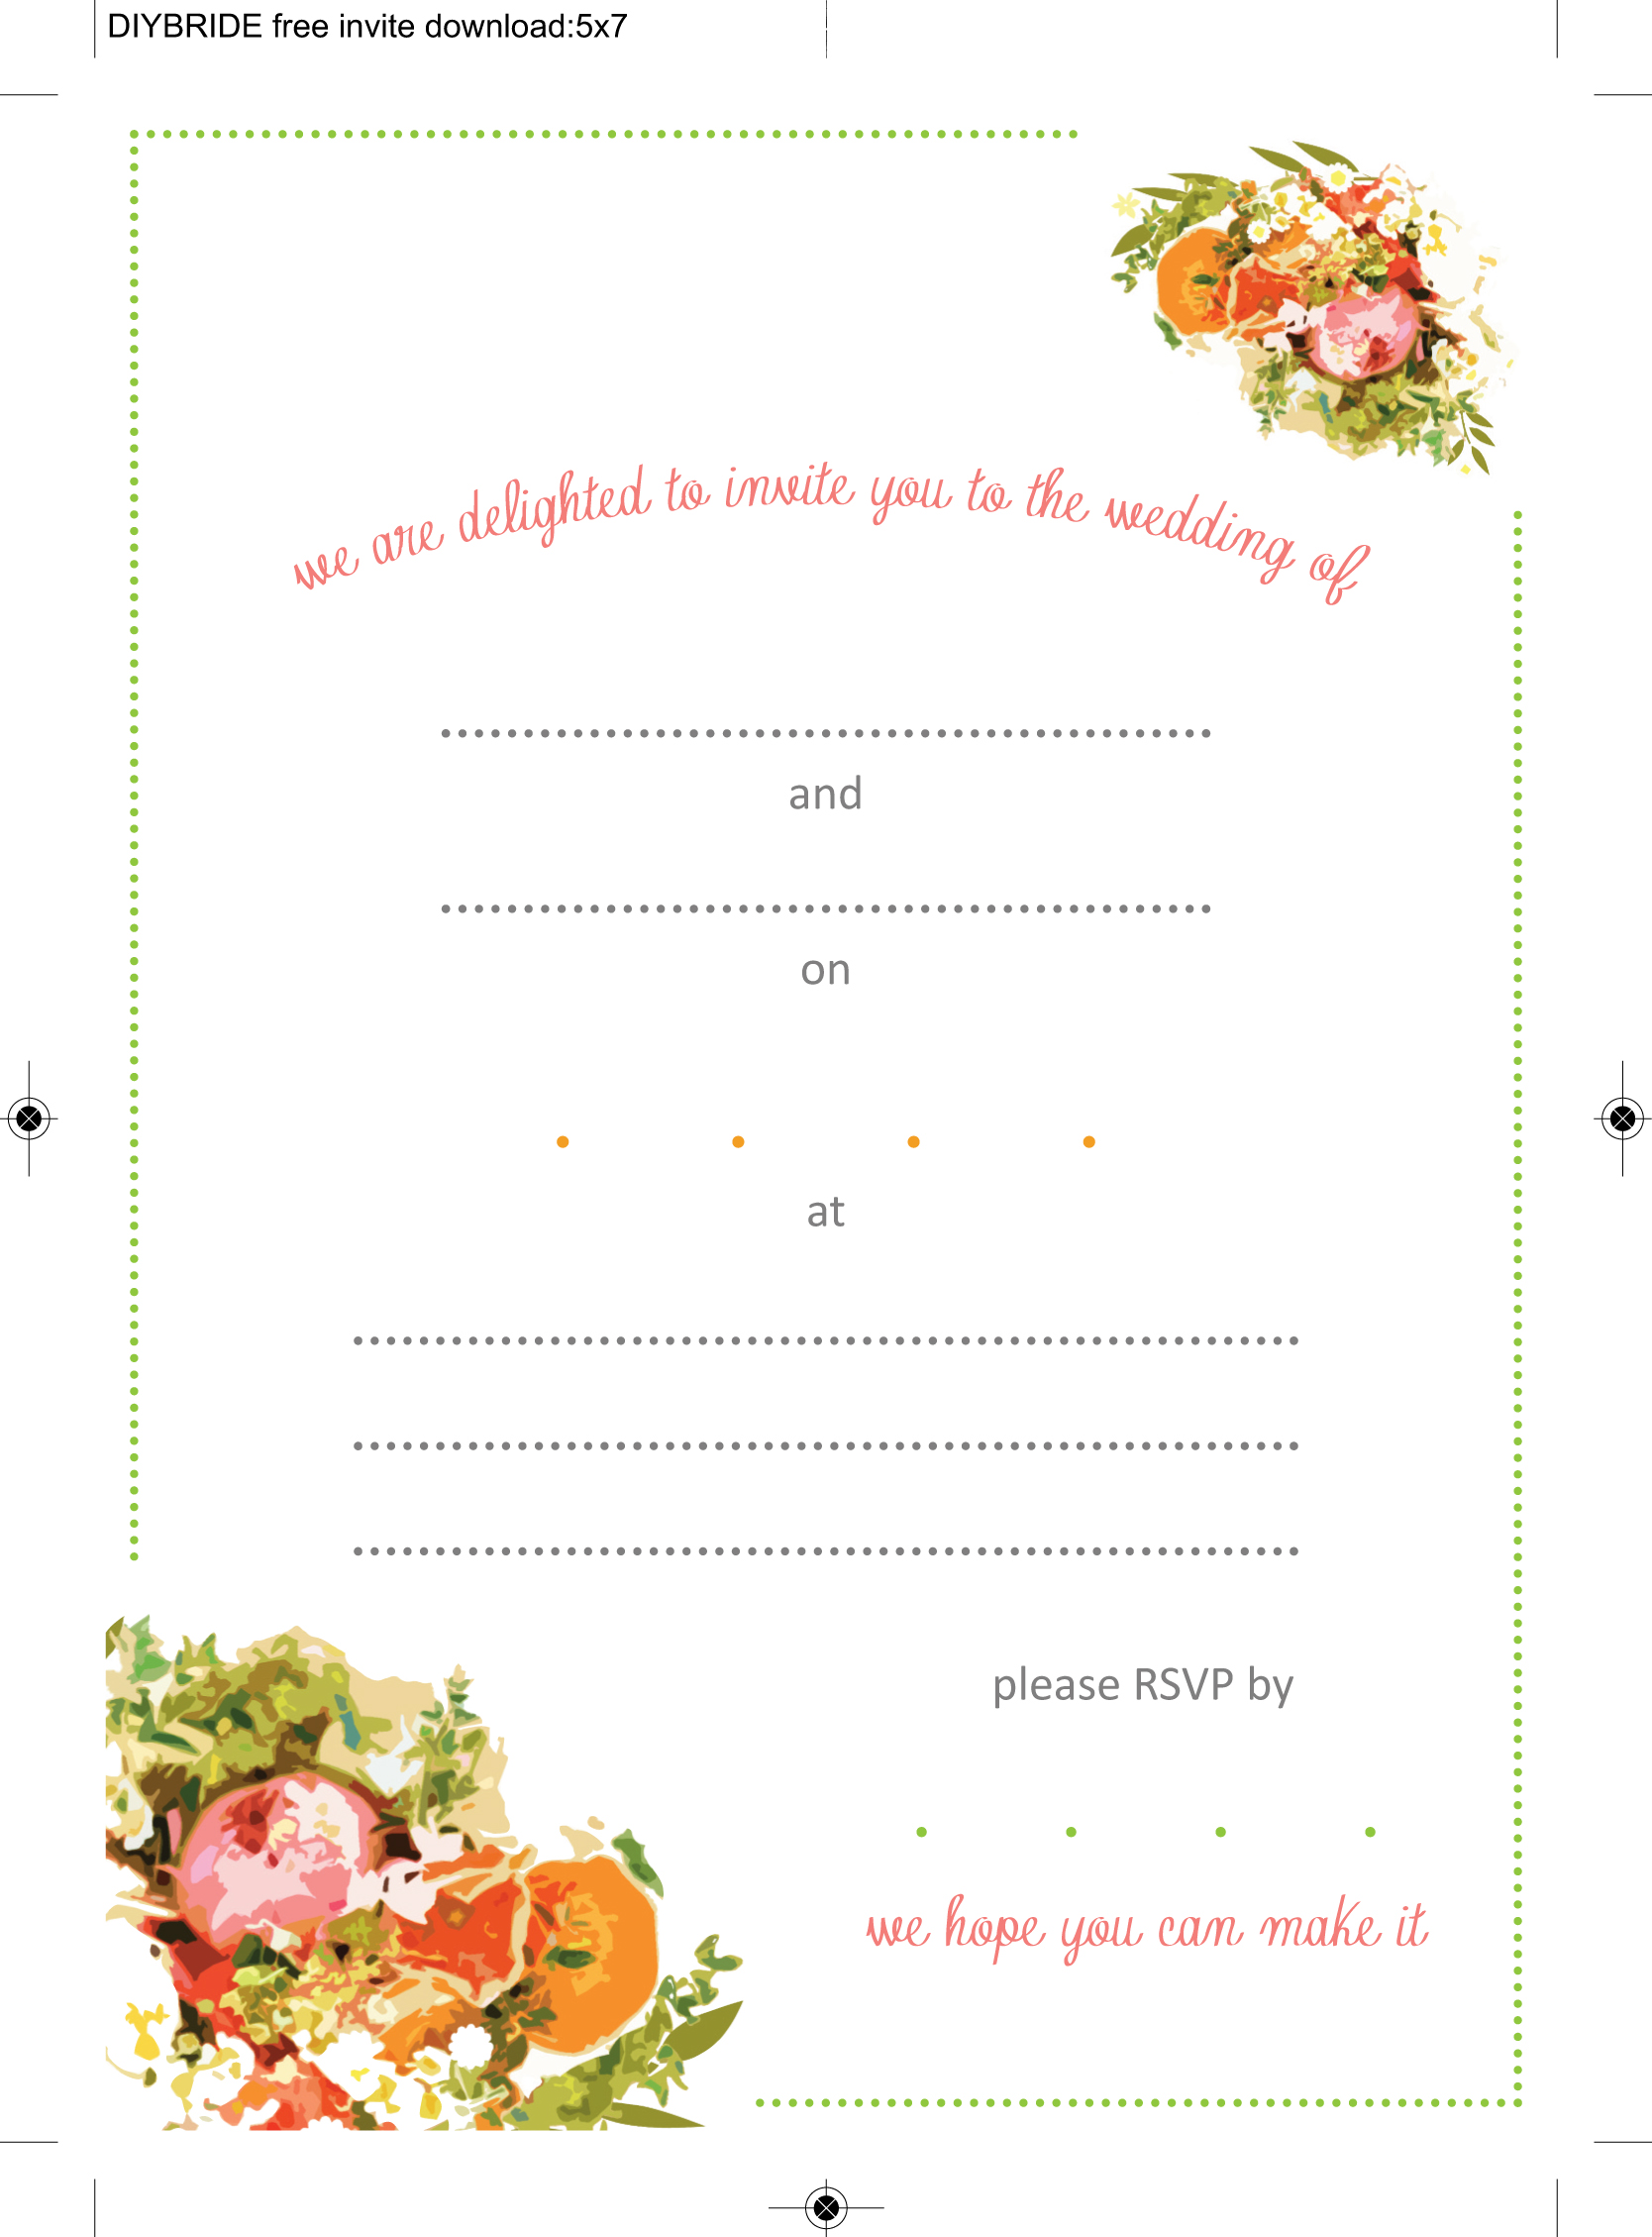 Wedding Invitation Templates (That Are Cute And Easy to Make!) - The ...